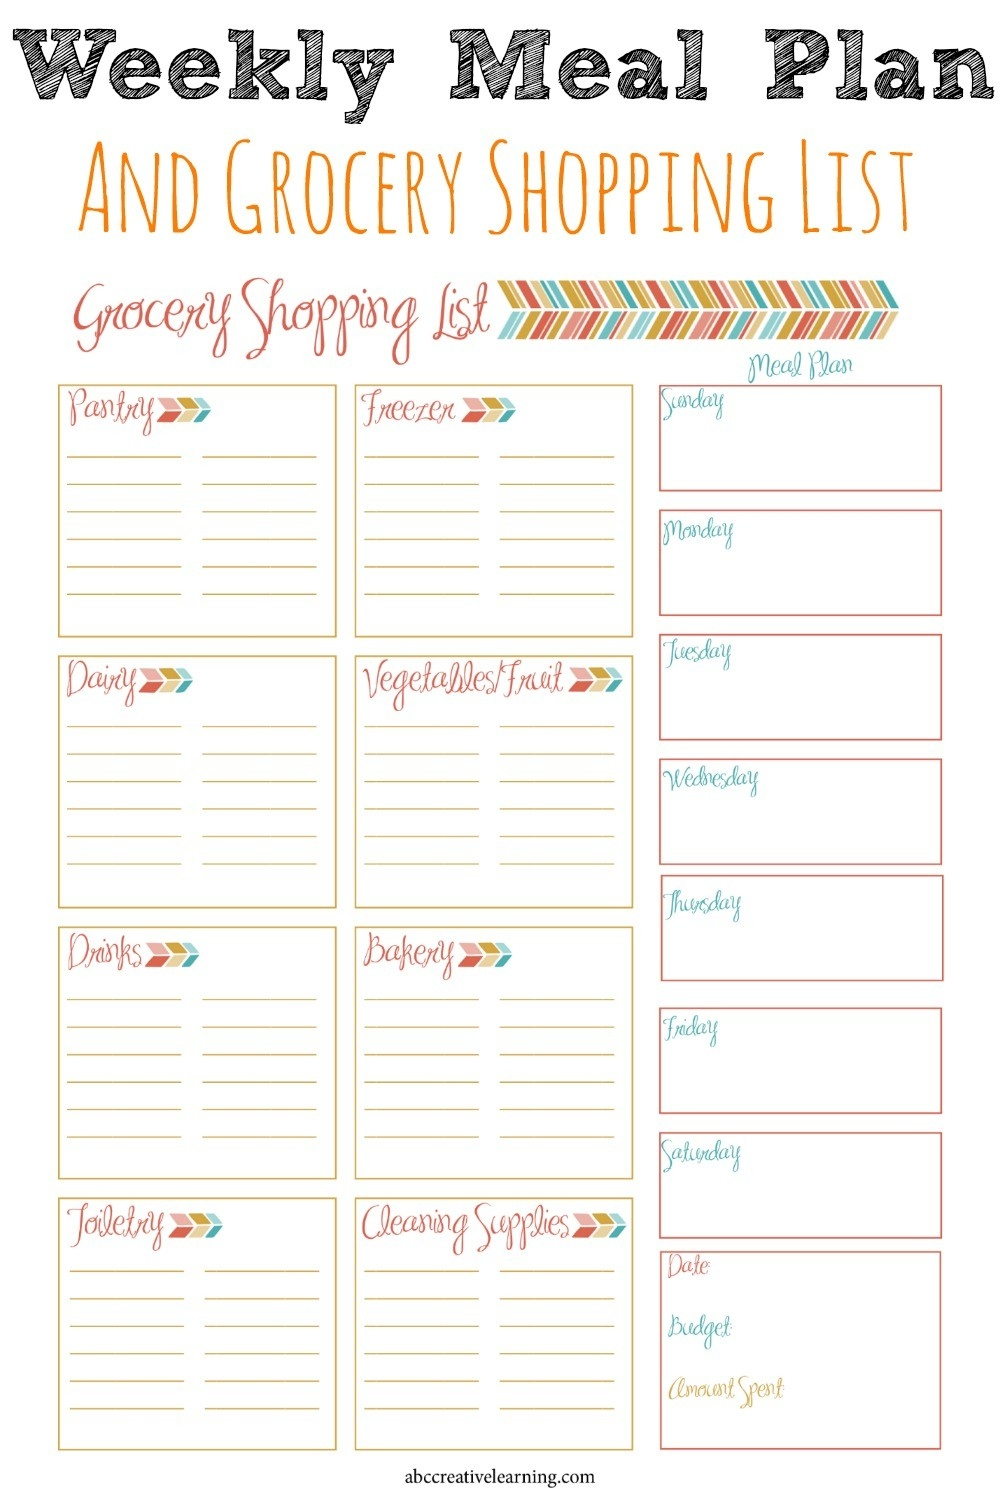 Weekly Meal Planner And Grocery Shopping List | Weekly Meal throughout Weekly Meal Planner With Grocery List 26302